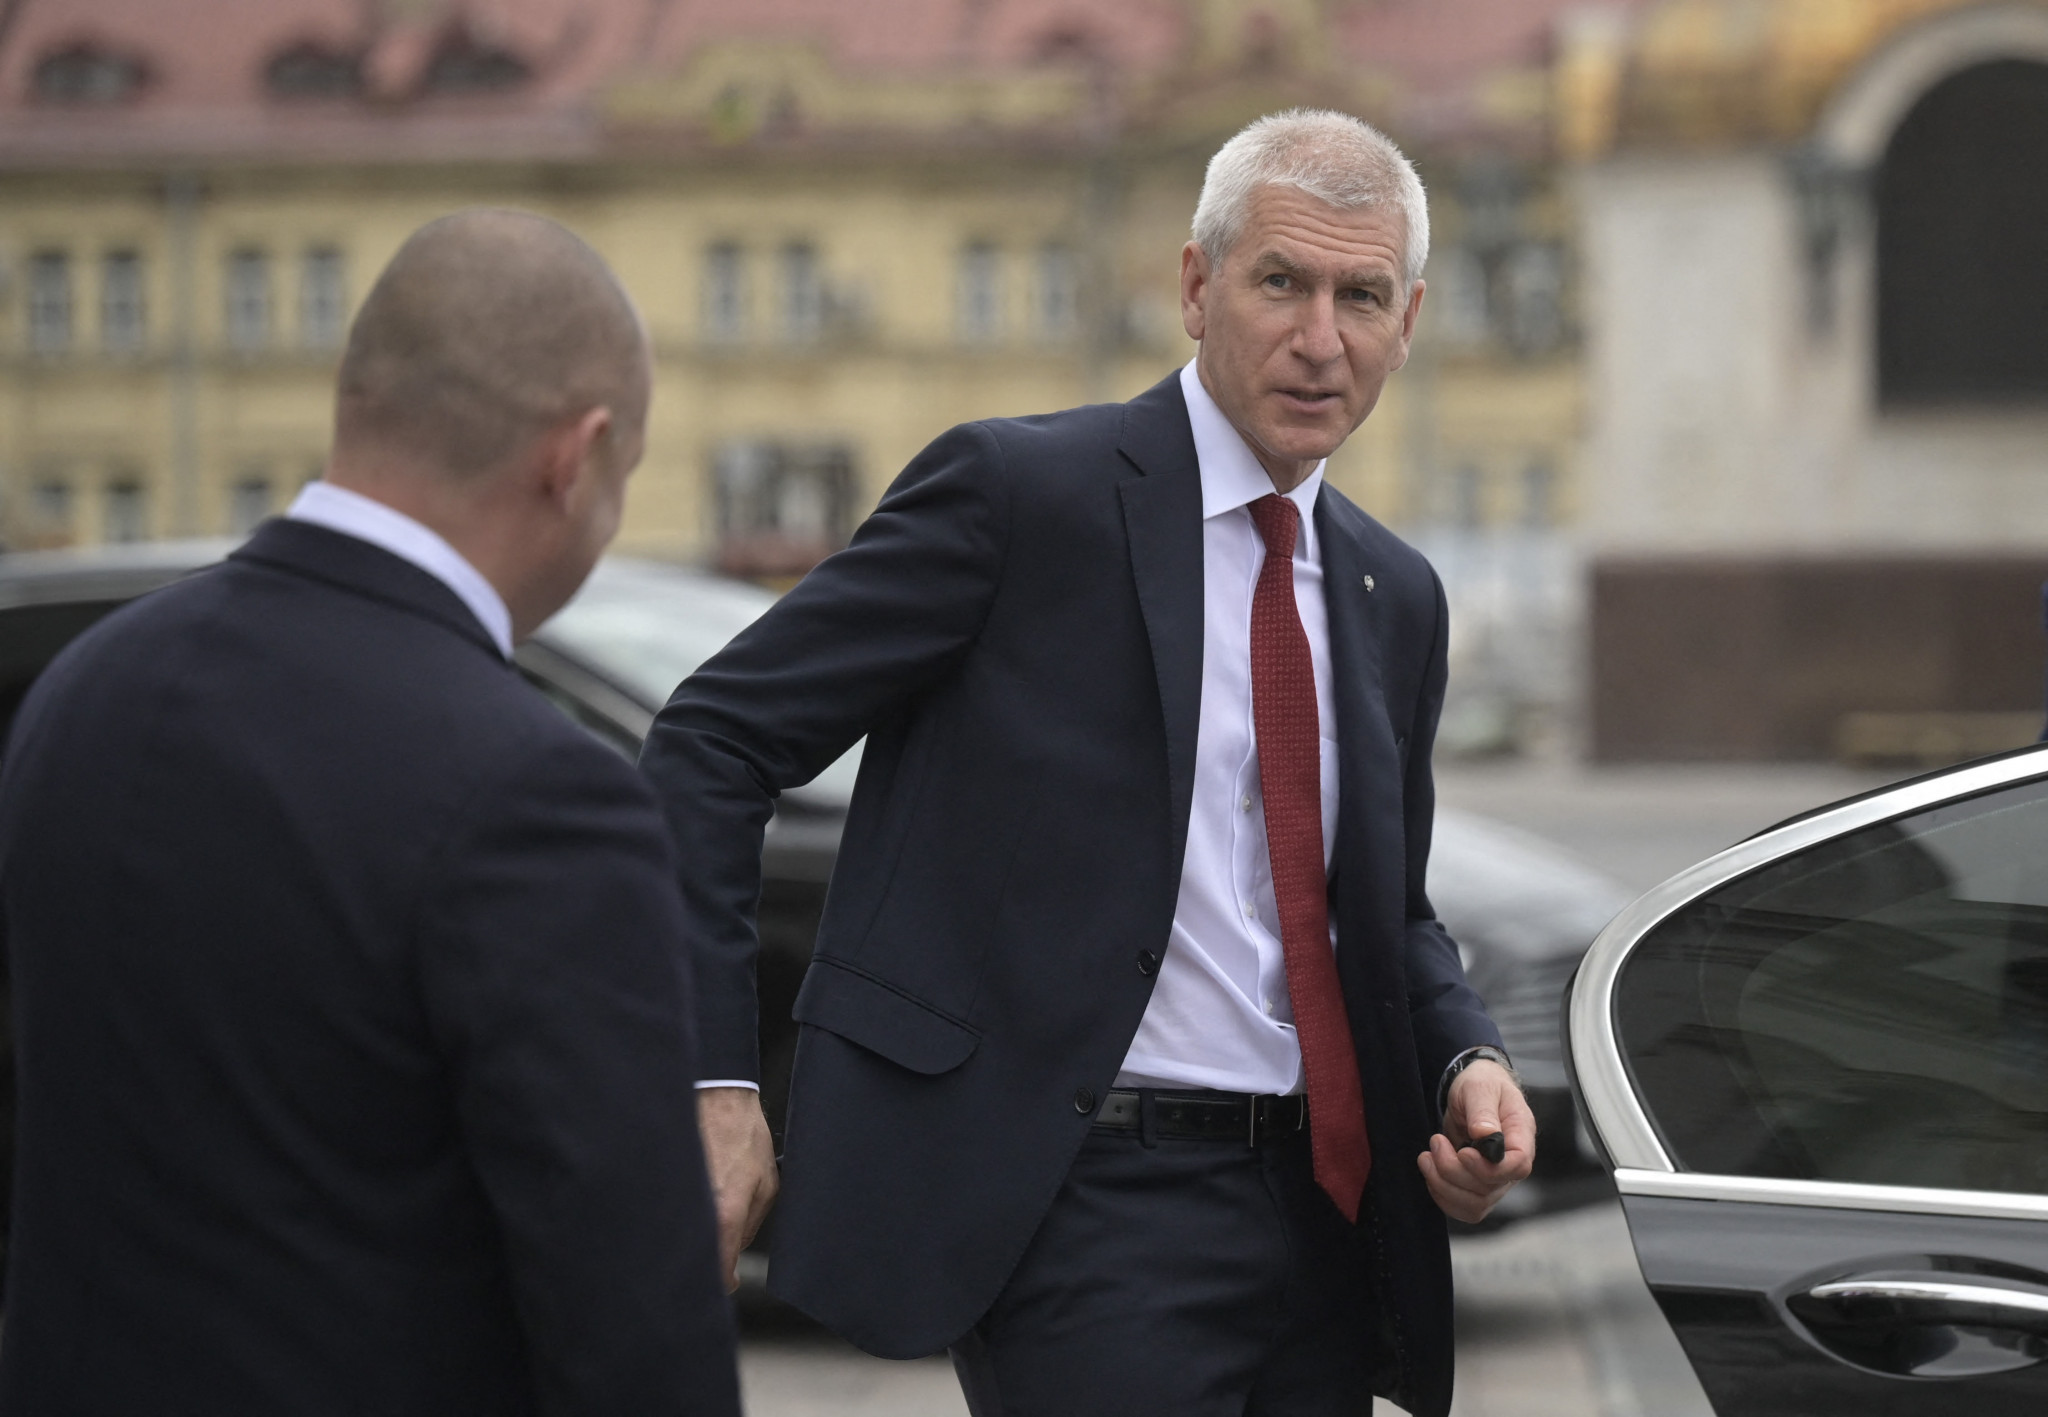 Matytsin to meet WADA President at anti-doping conference in Paris